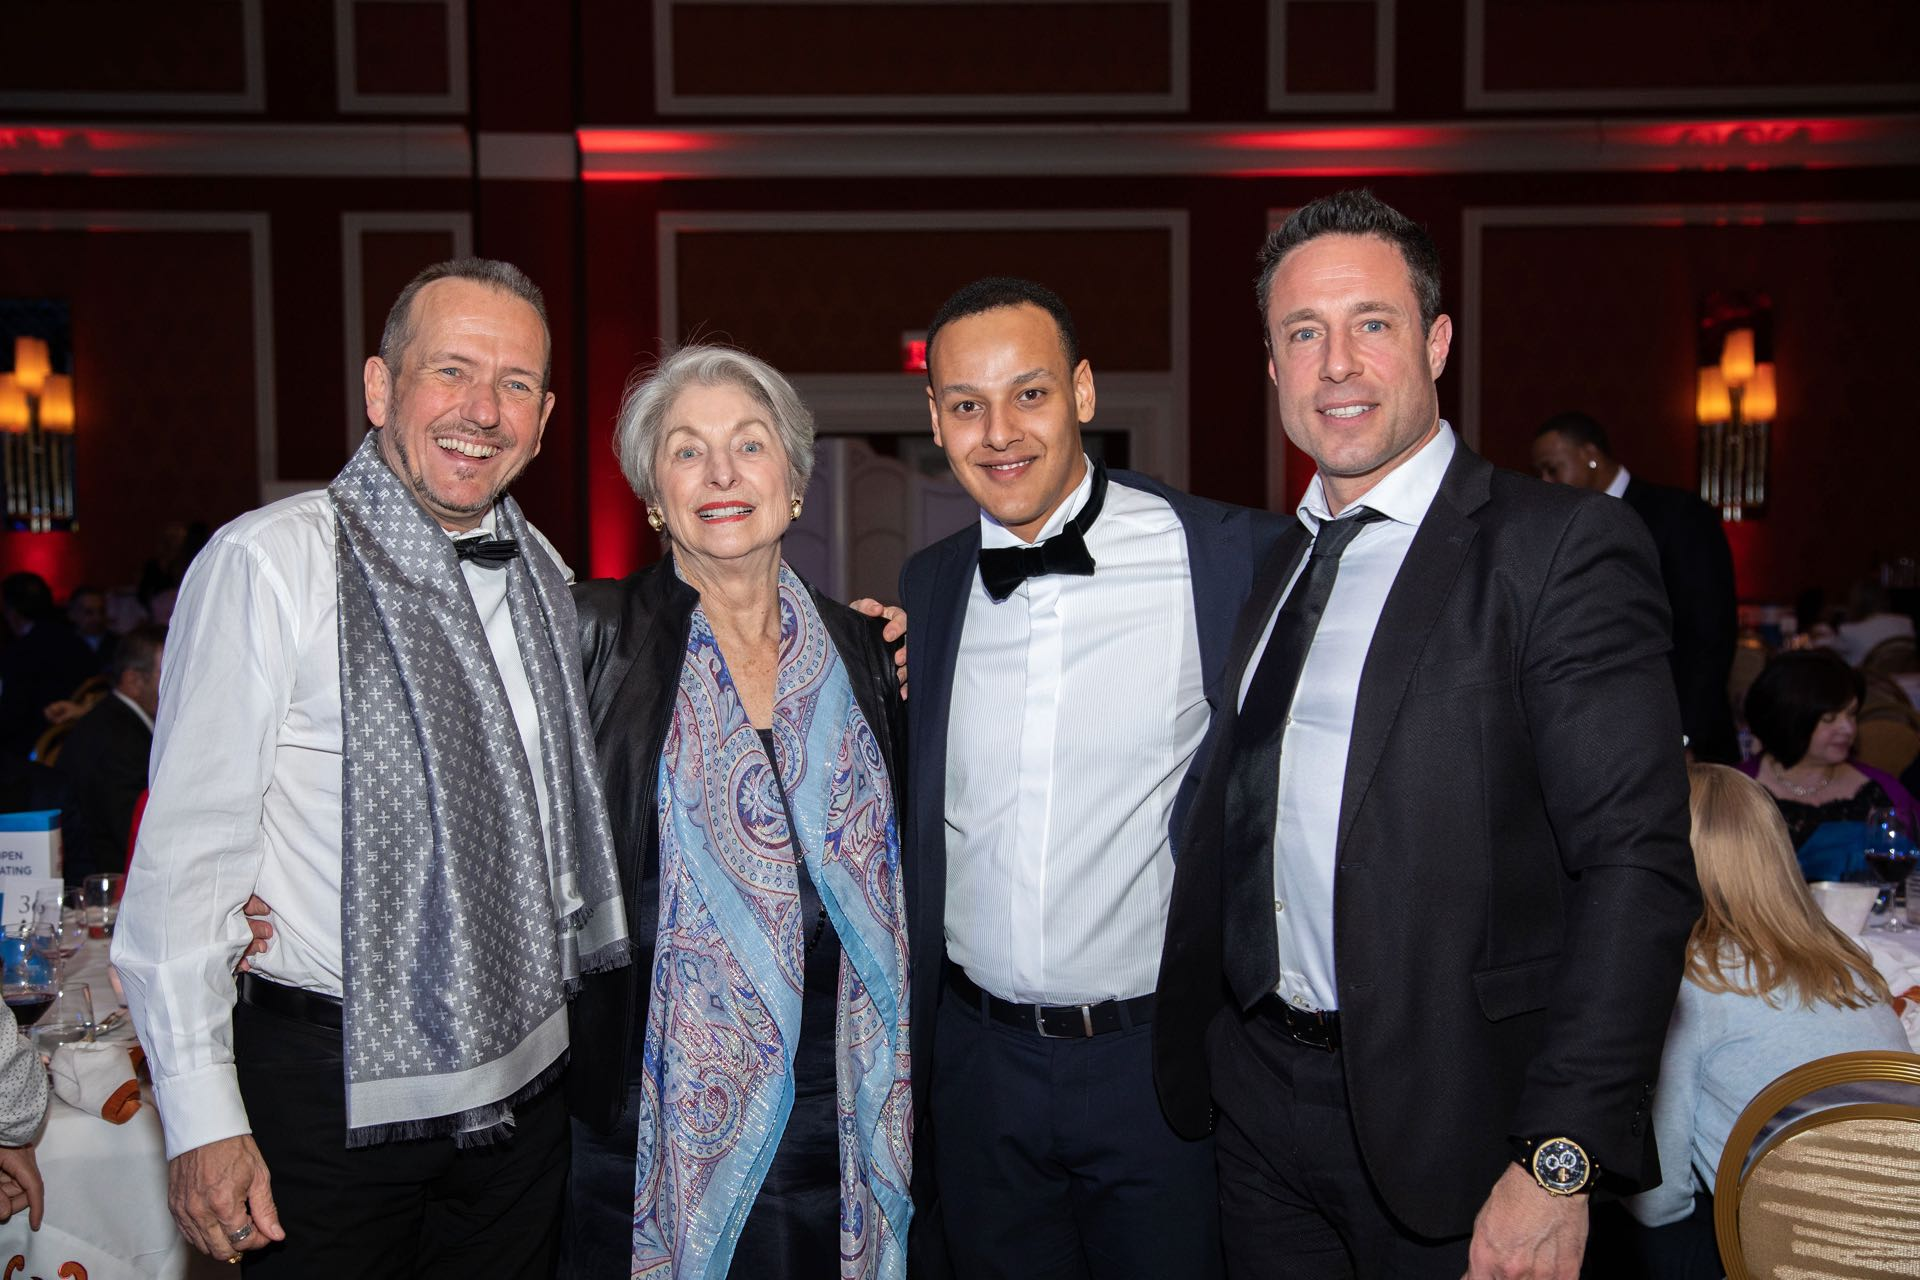 From left to right: Ueli Schnorf / Owner Wetag Consulting, Michael Sunders / Owner Michael Sunders Real Estate, Massimiliano Kapeen / Senior Consultant Wetag Consulting, Iradj Alexander-David / Director Locarno Ascona Wetag Consulting